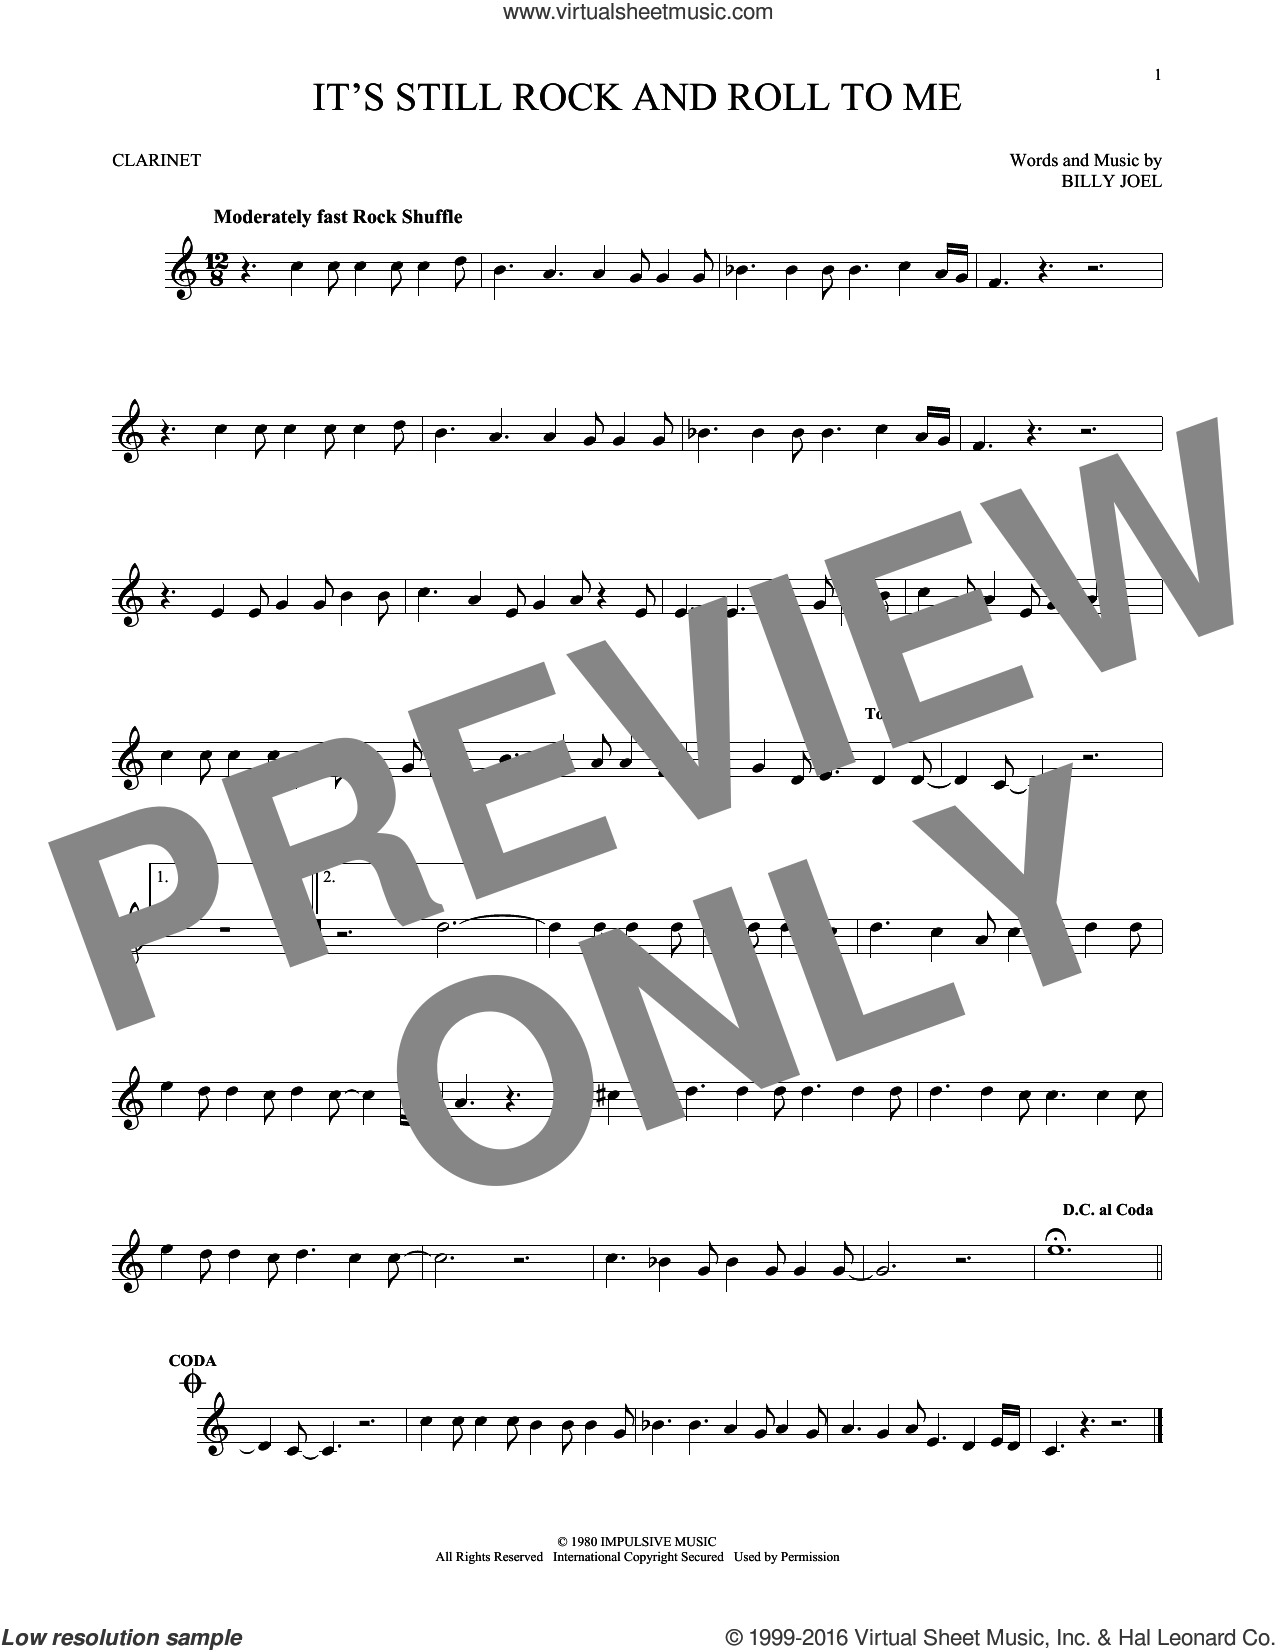 It's Still Rock And Roll To Me sheet music for clarinet solo by Billy Joel, intermediate skill level